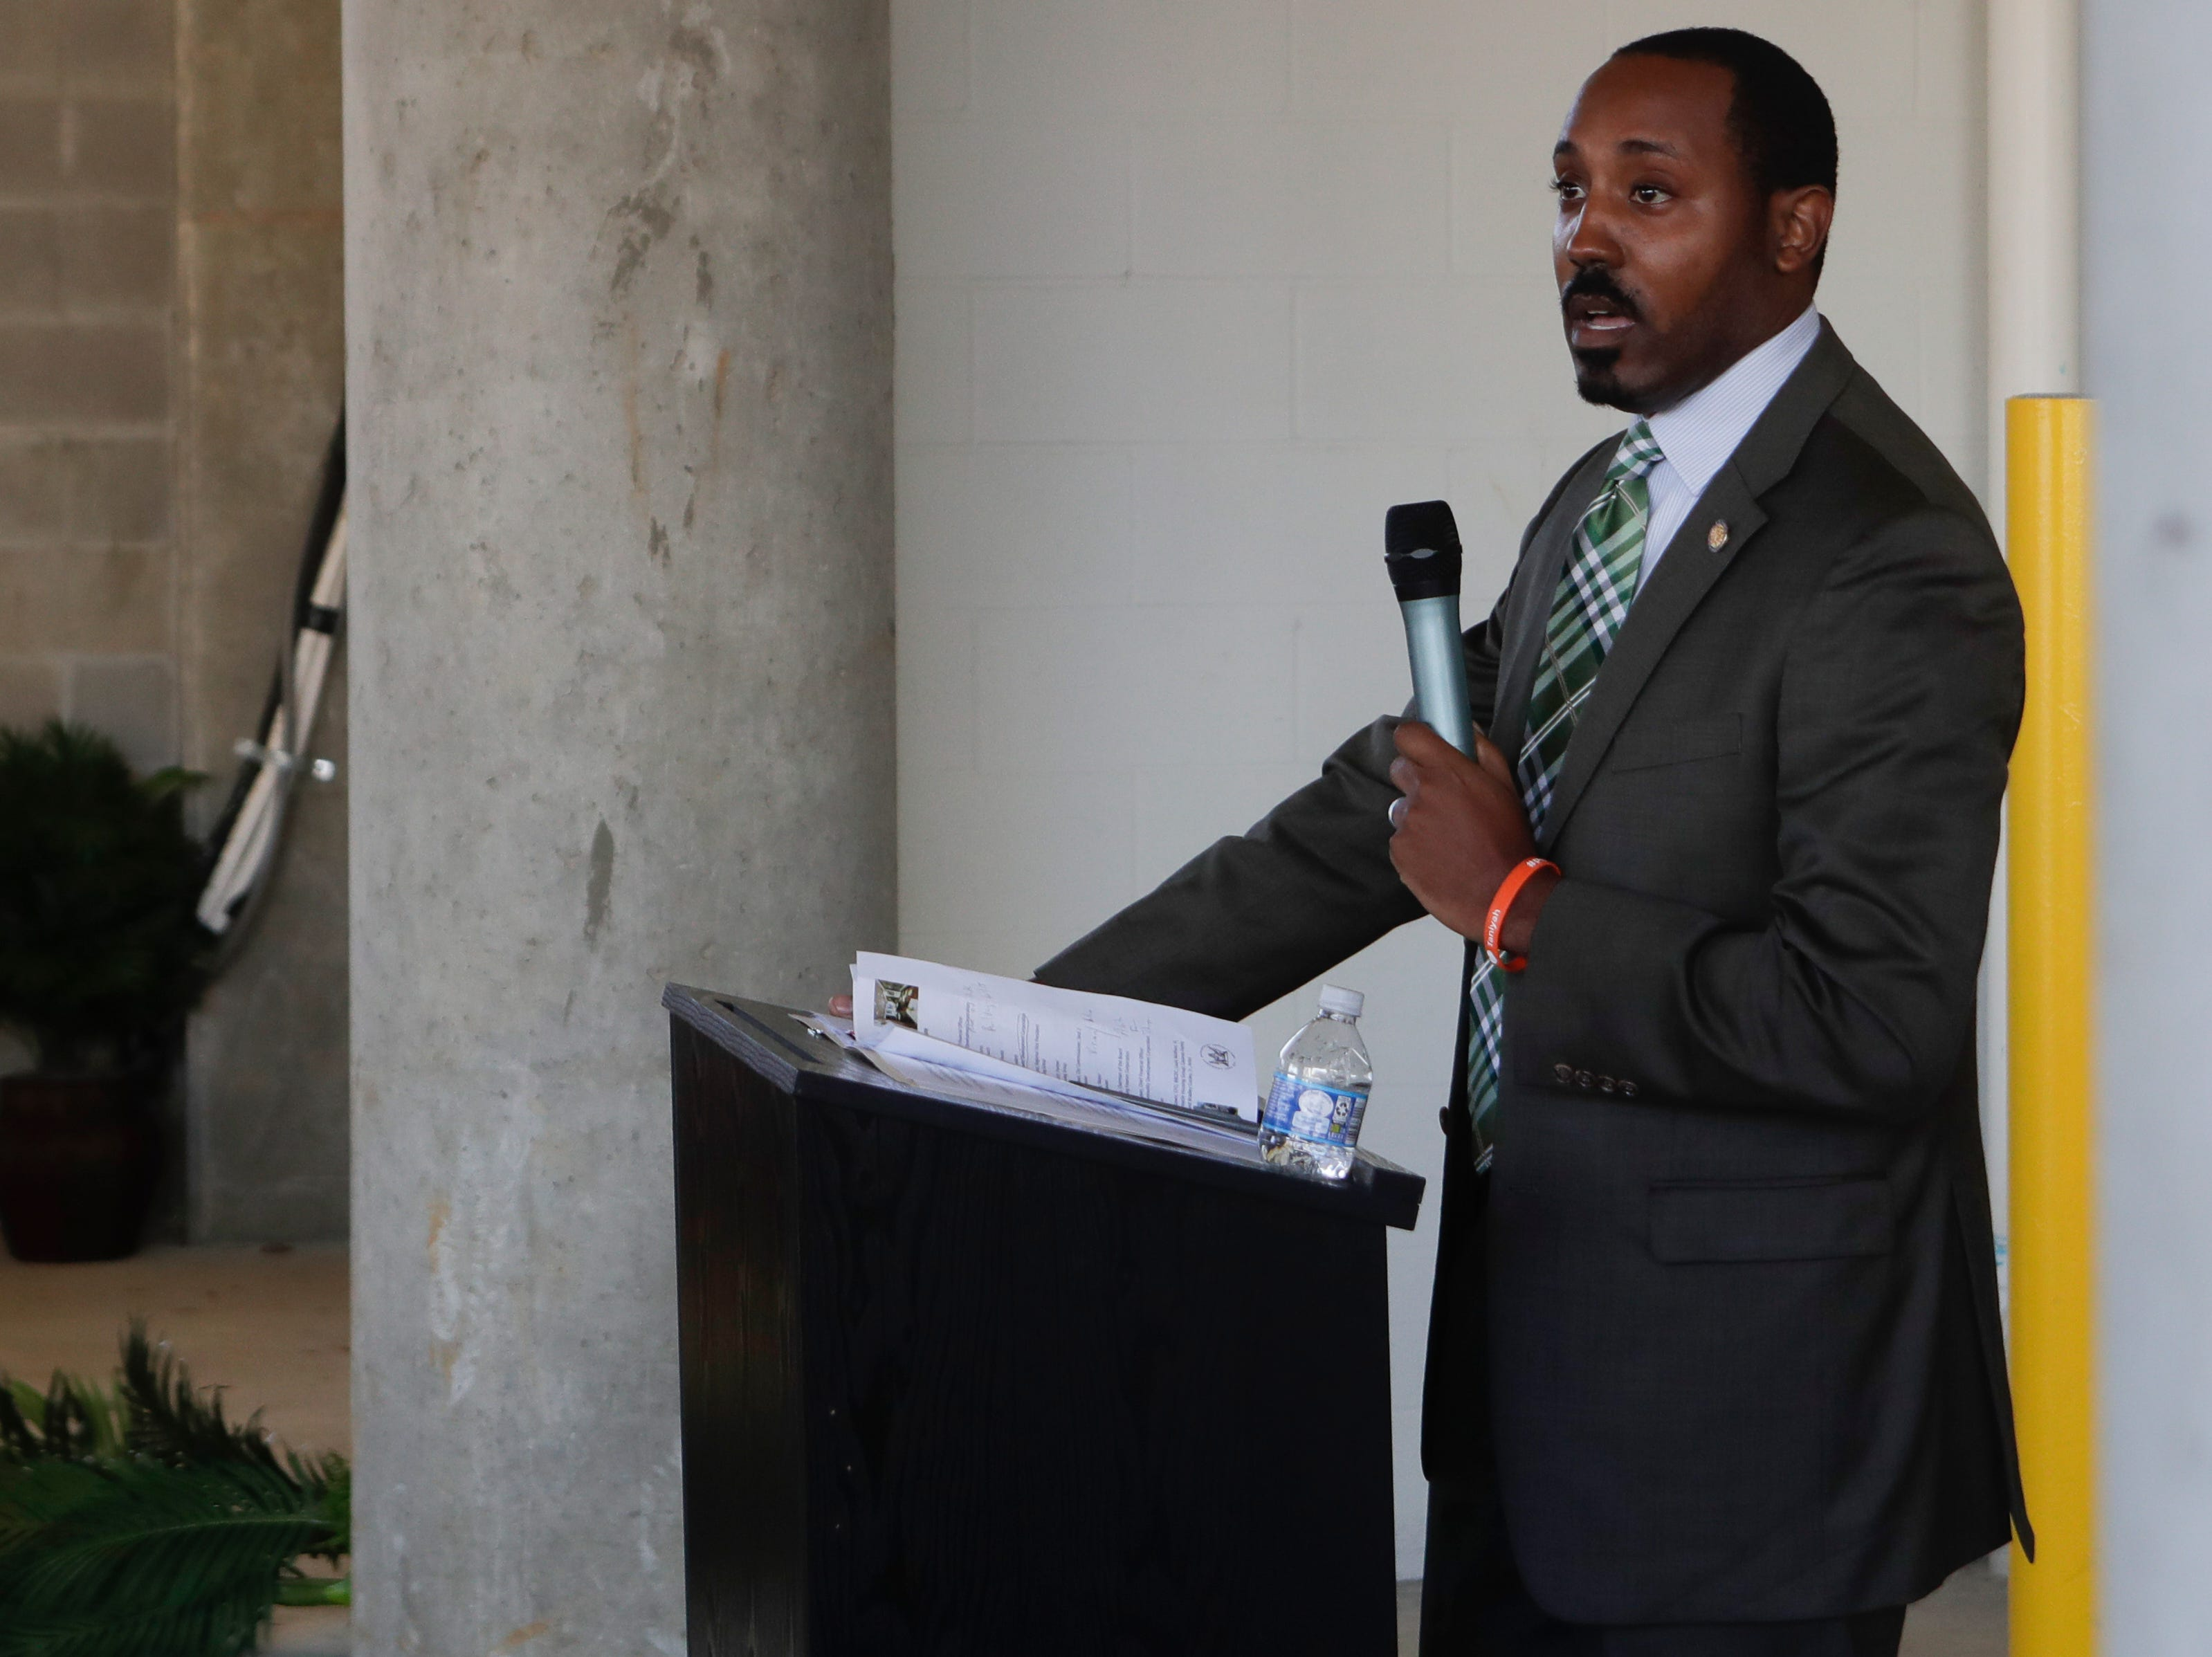 Rep. Ramon Alexander speaks during the grand opening celebration for the Casañas Village Apartments at Frenchtown Square Thursday, Jan. 31, 2019.